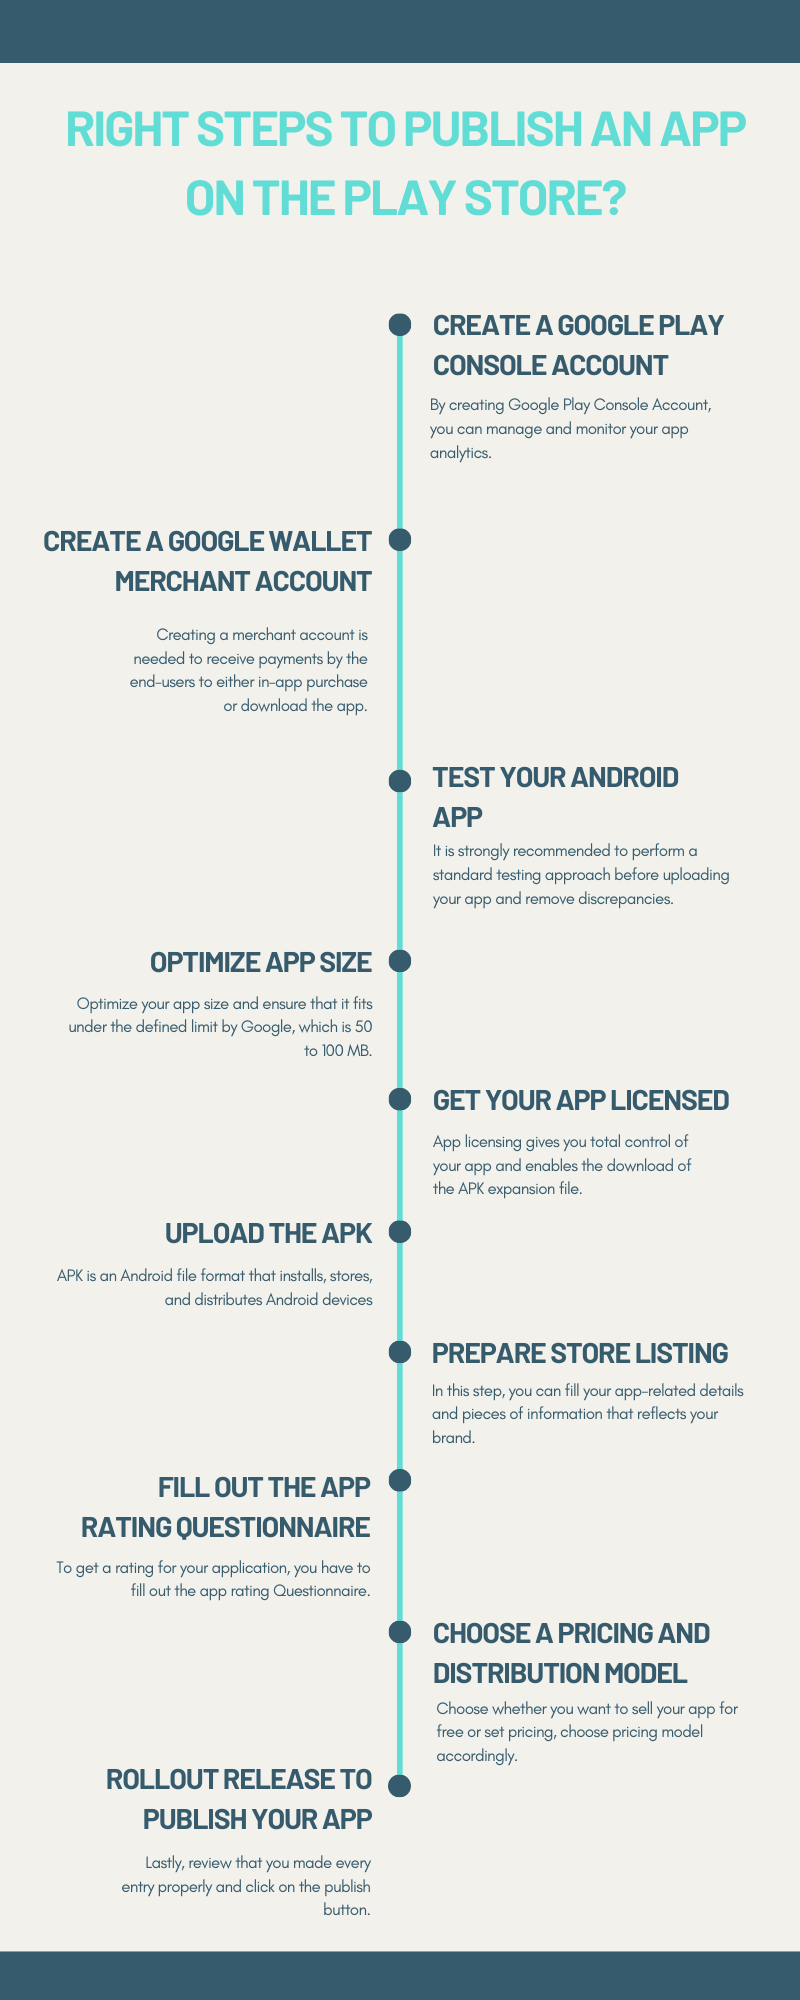 Right Steps to publish an app on the Play-Store